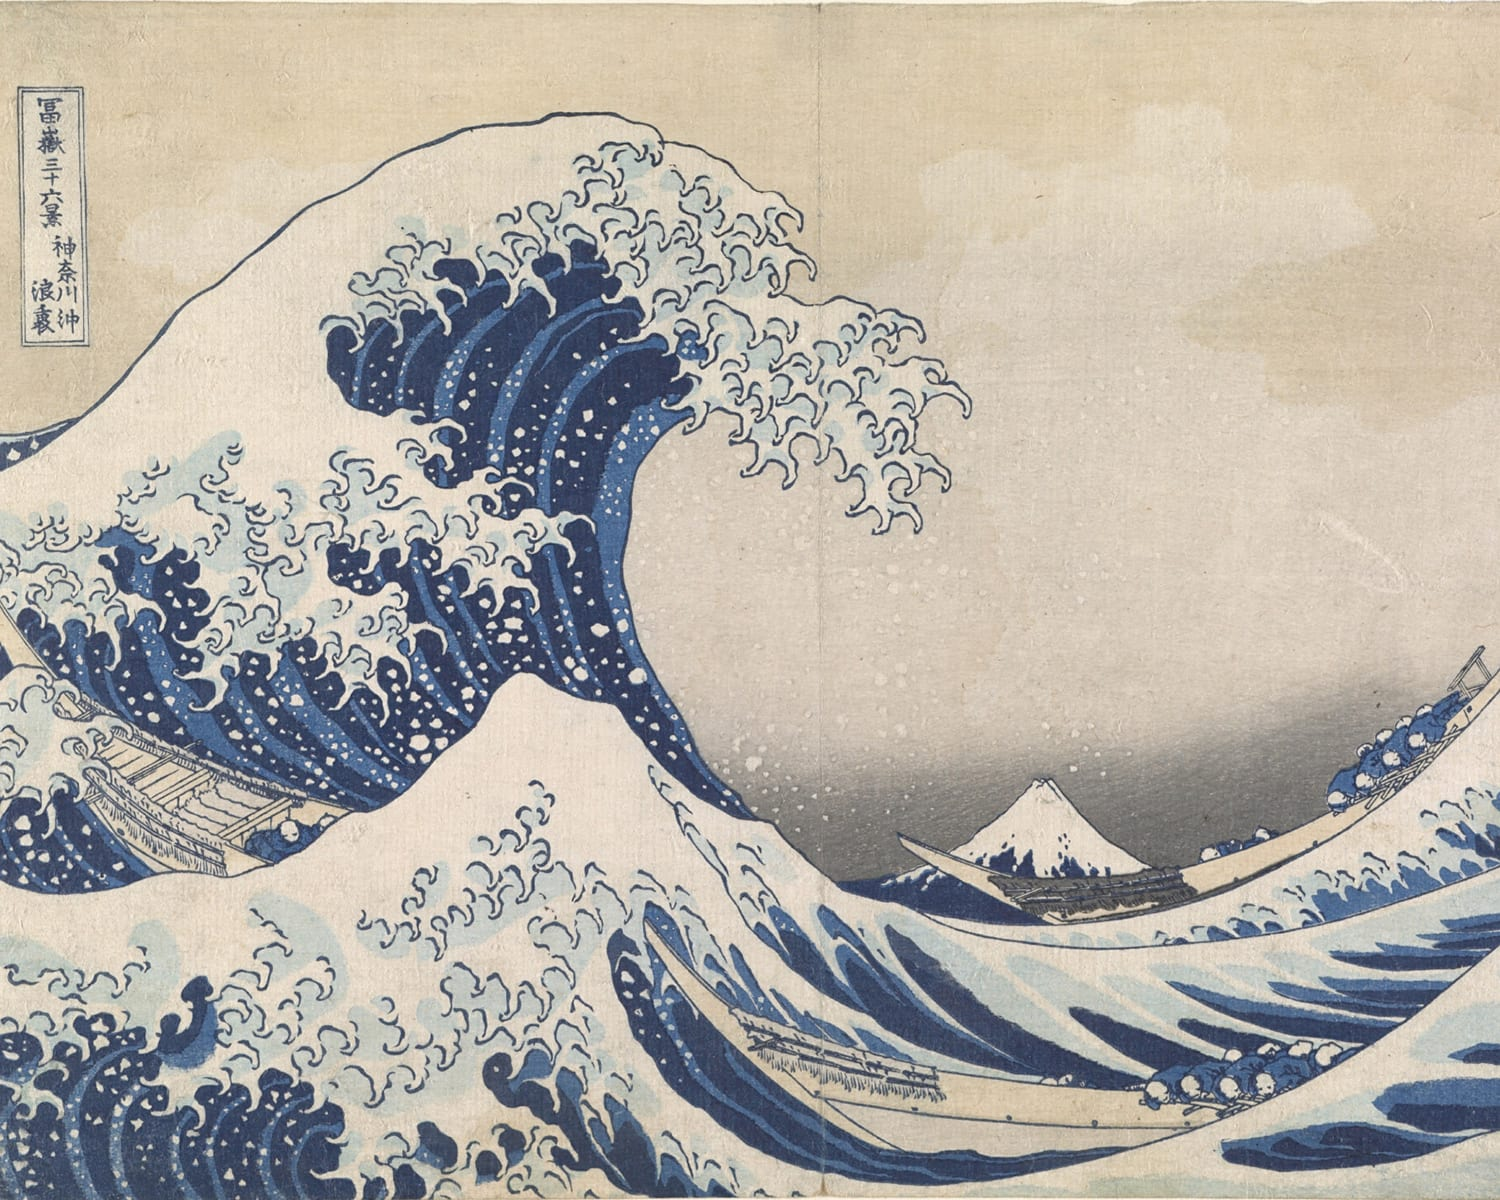 Katsushika HOKUSAI The great wave off Kanagawa (c. 1830)  from the Thirty-six views of Mt Fuji series 1826-33 colour woodblock 25.7 x 37.7 cm (image and sheet) National Gallery of Victoria, Melbourne Felton Bequest, 1909 426-2